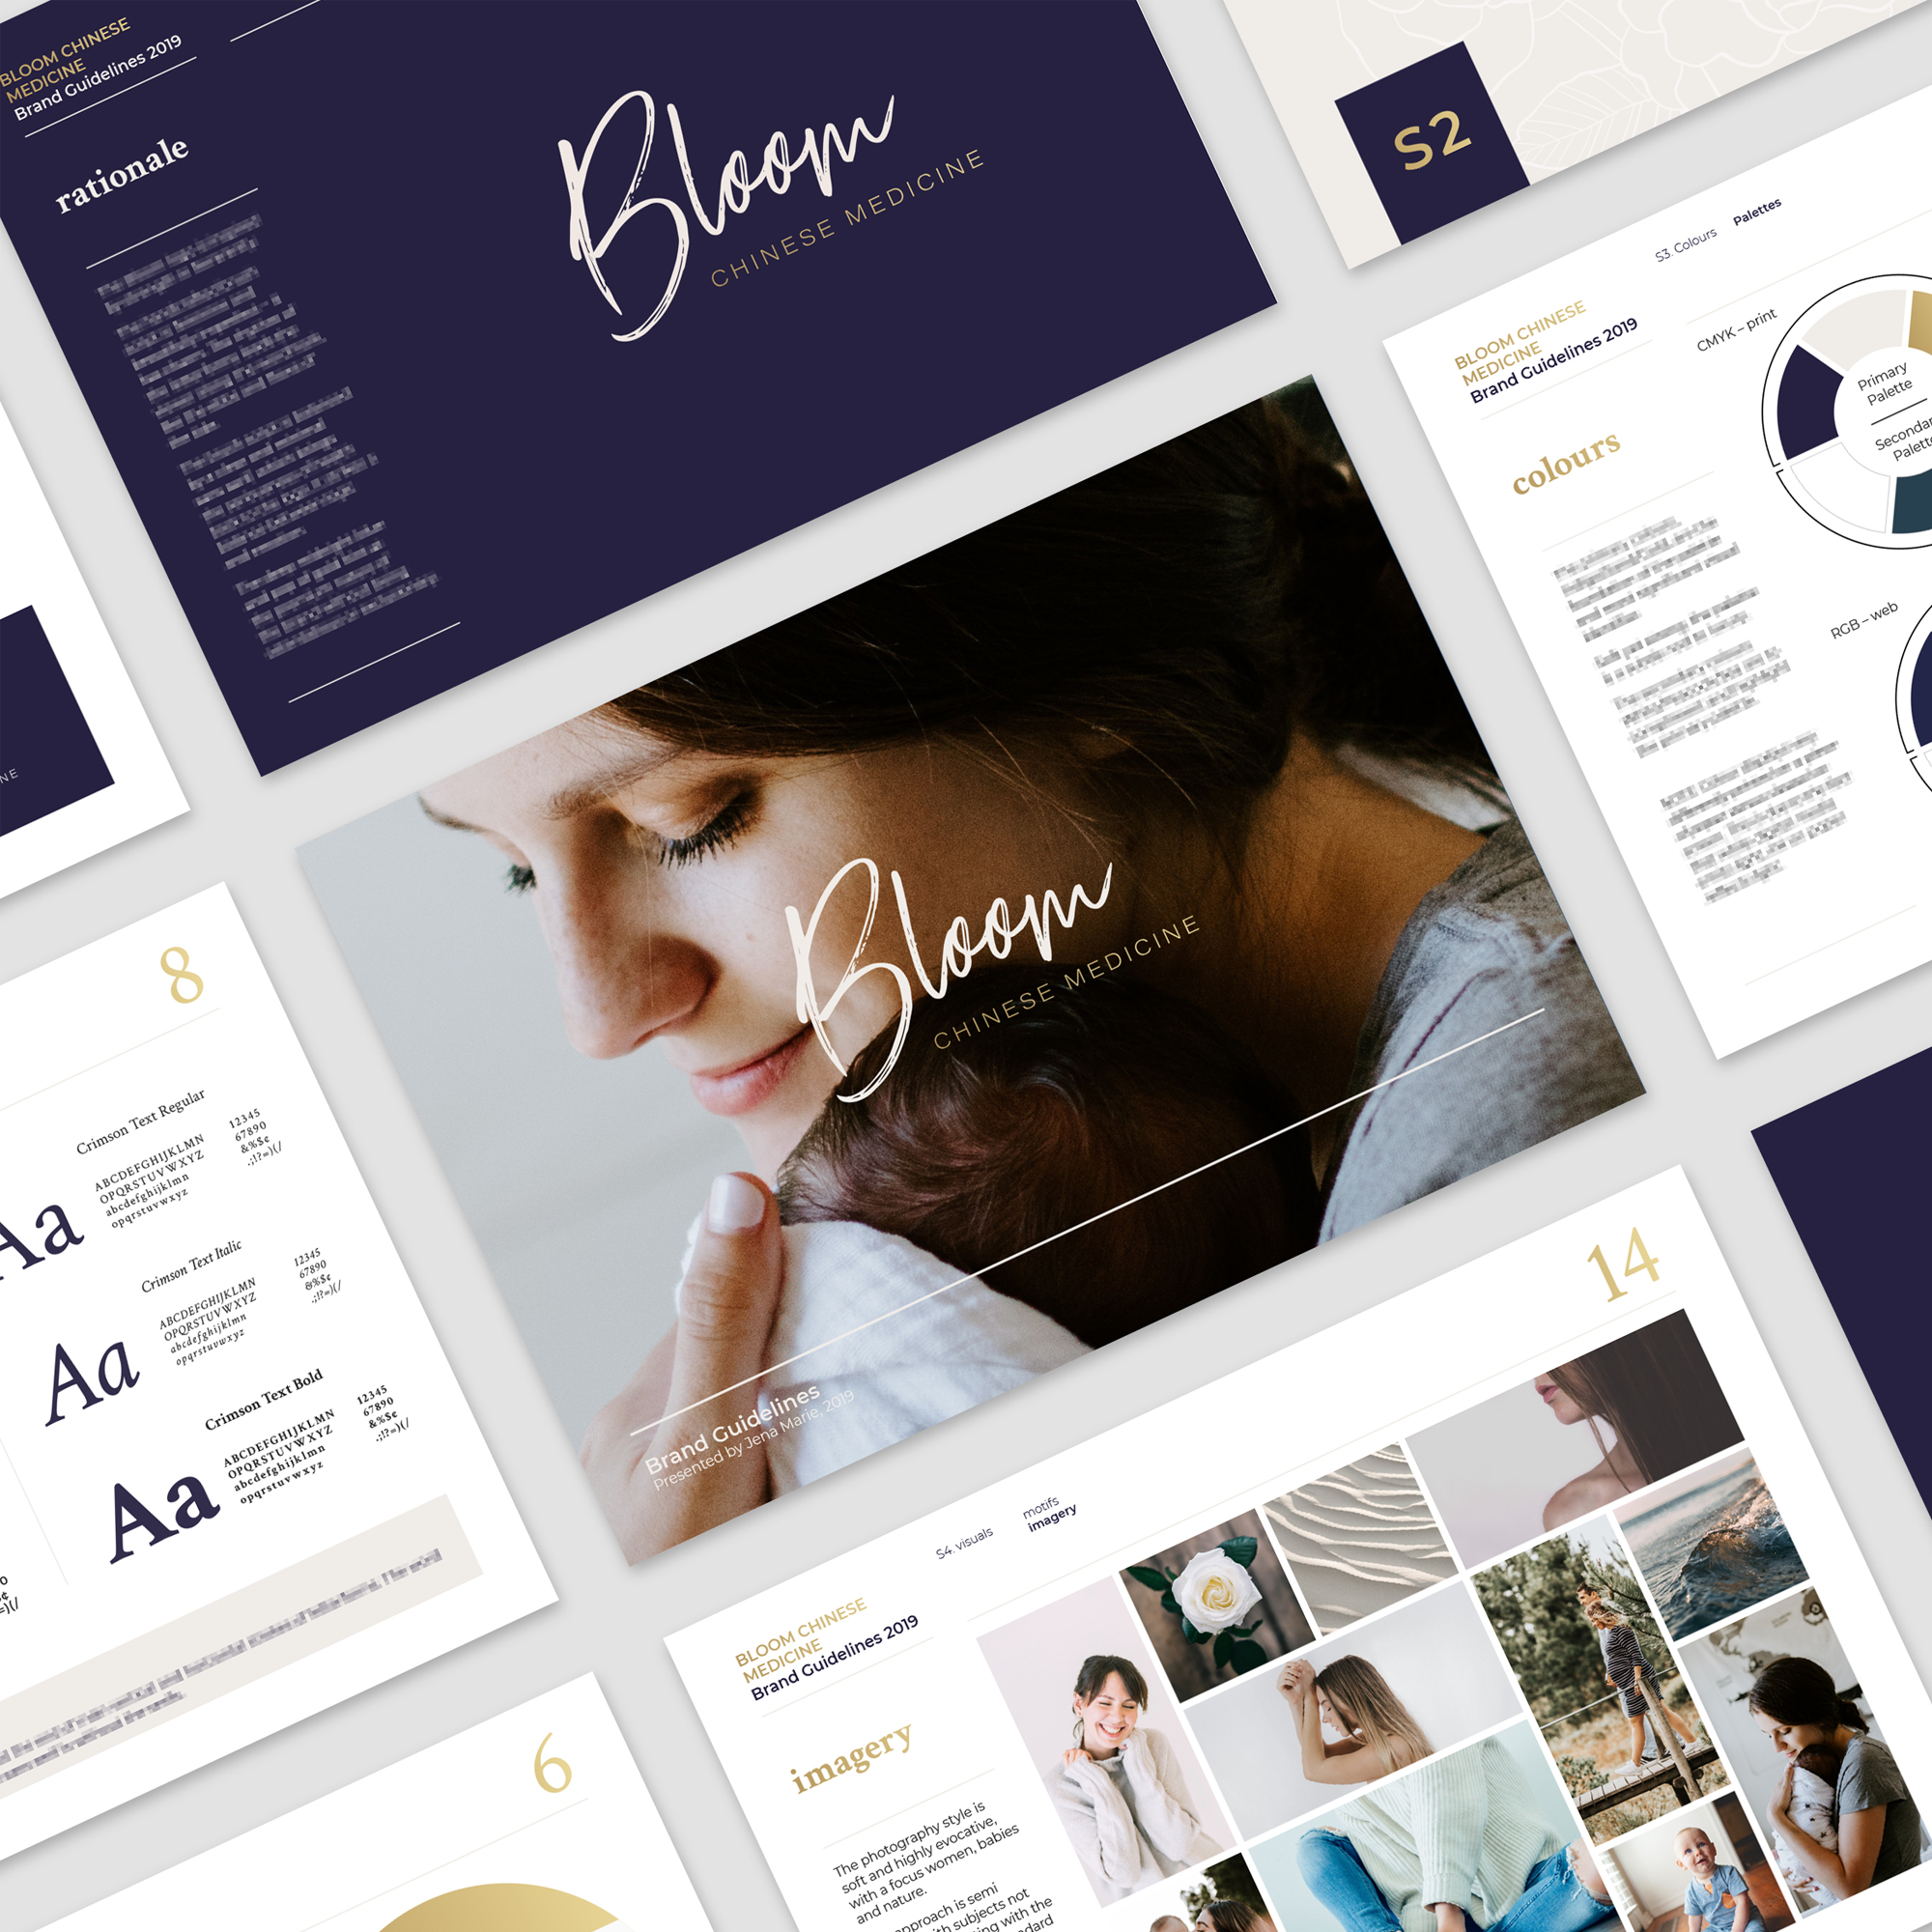 Interested to know more about Branding with Jena Marie? - A strong visual identity is key to forming an initial connection with potential customers. Check out this case study which details my branding process for Bloom Chinese Medicine.